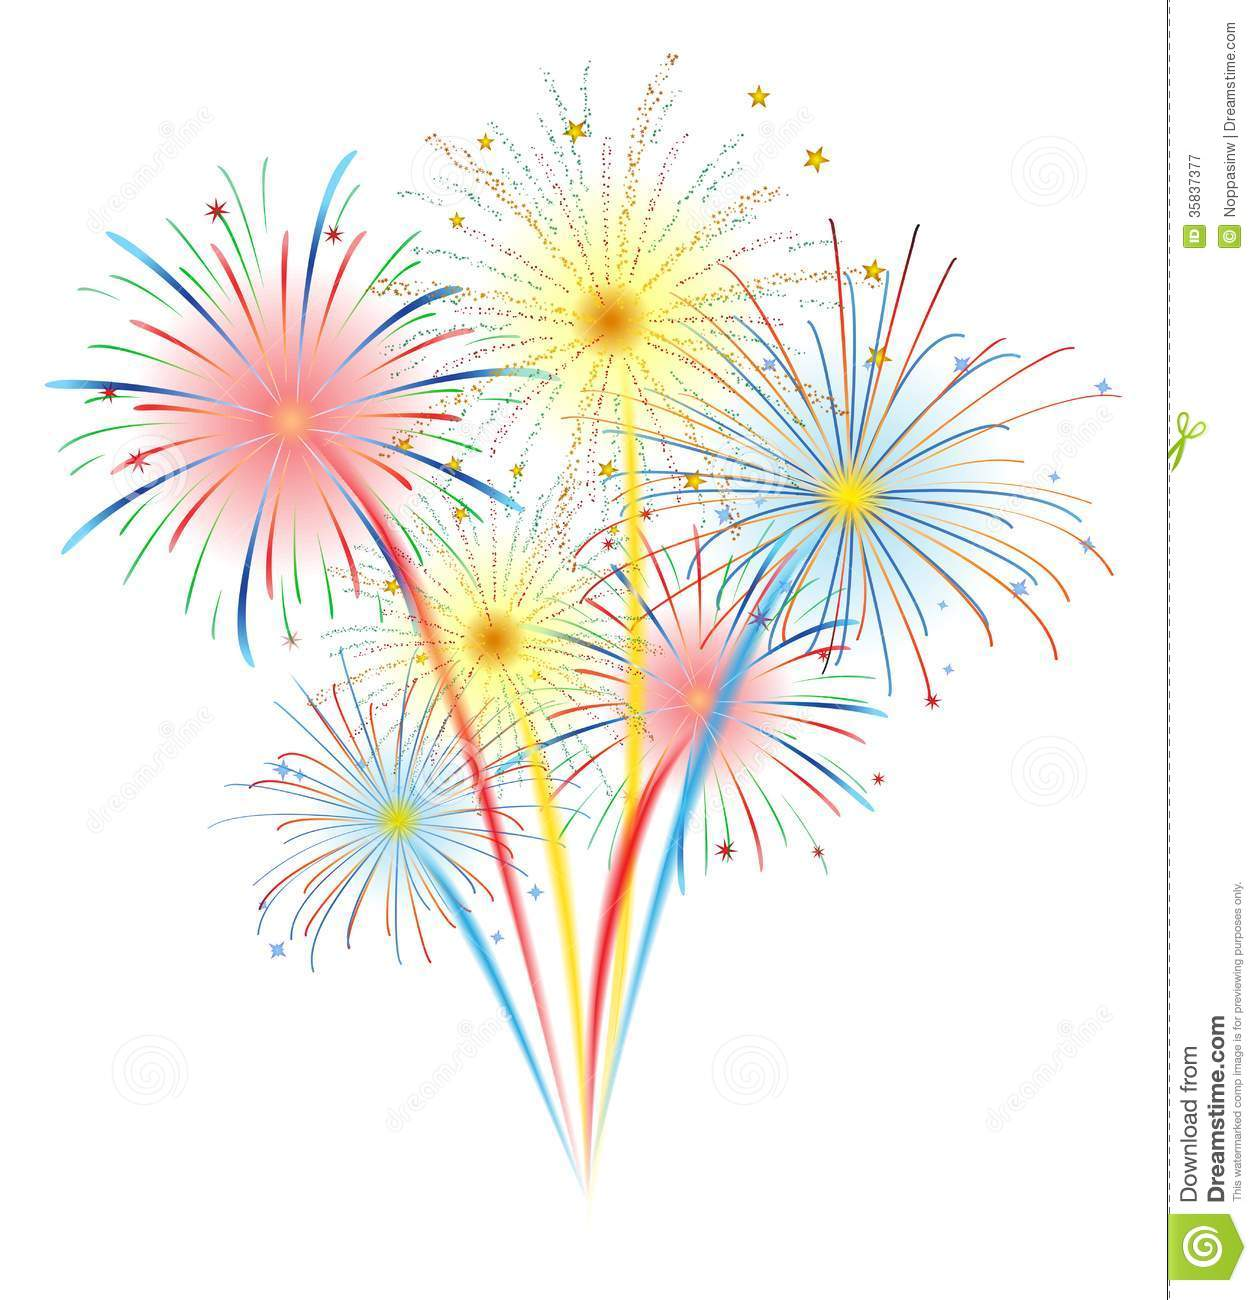 Fireworks Vector Royalty Free Stock Photography - Image: 35837377